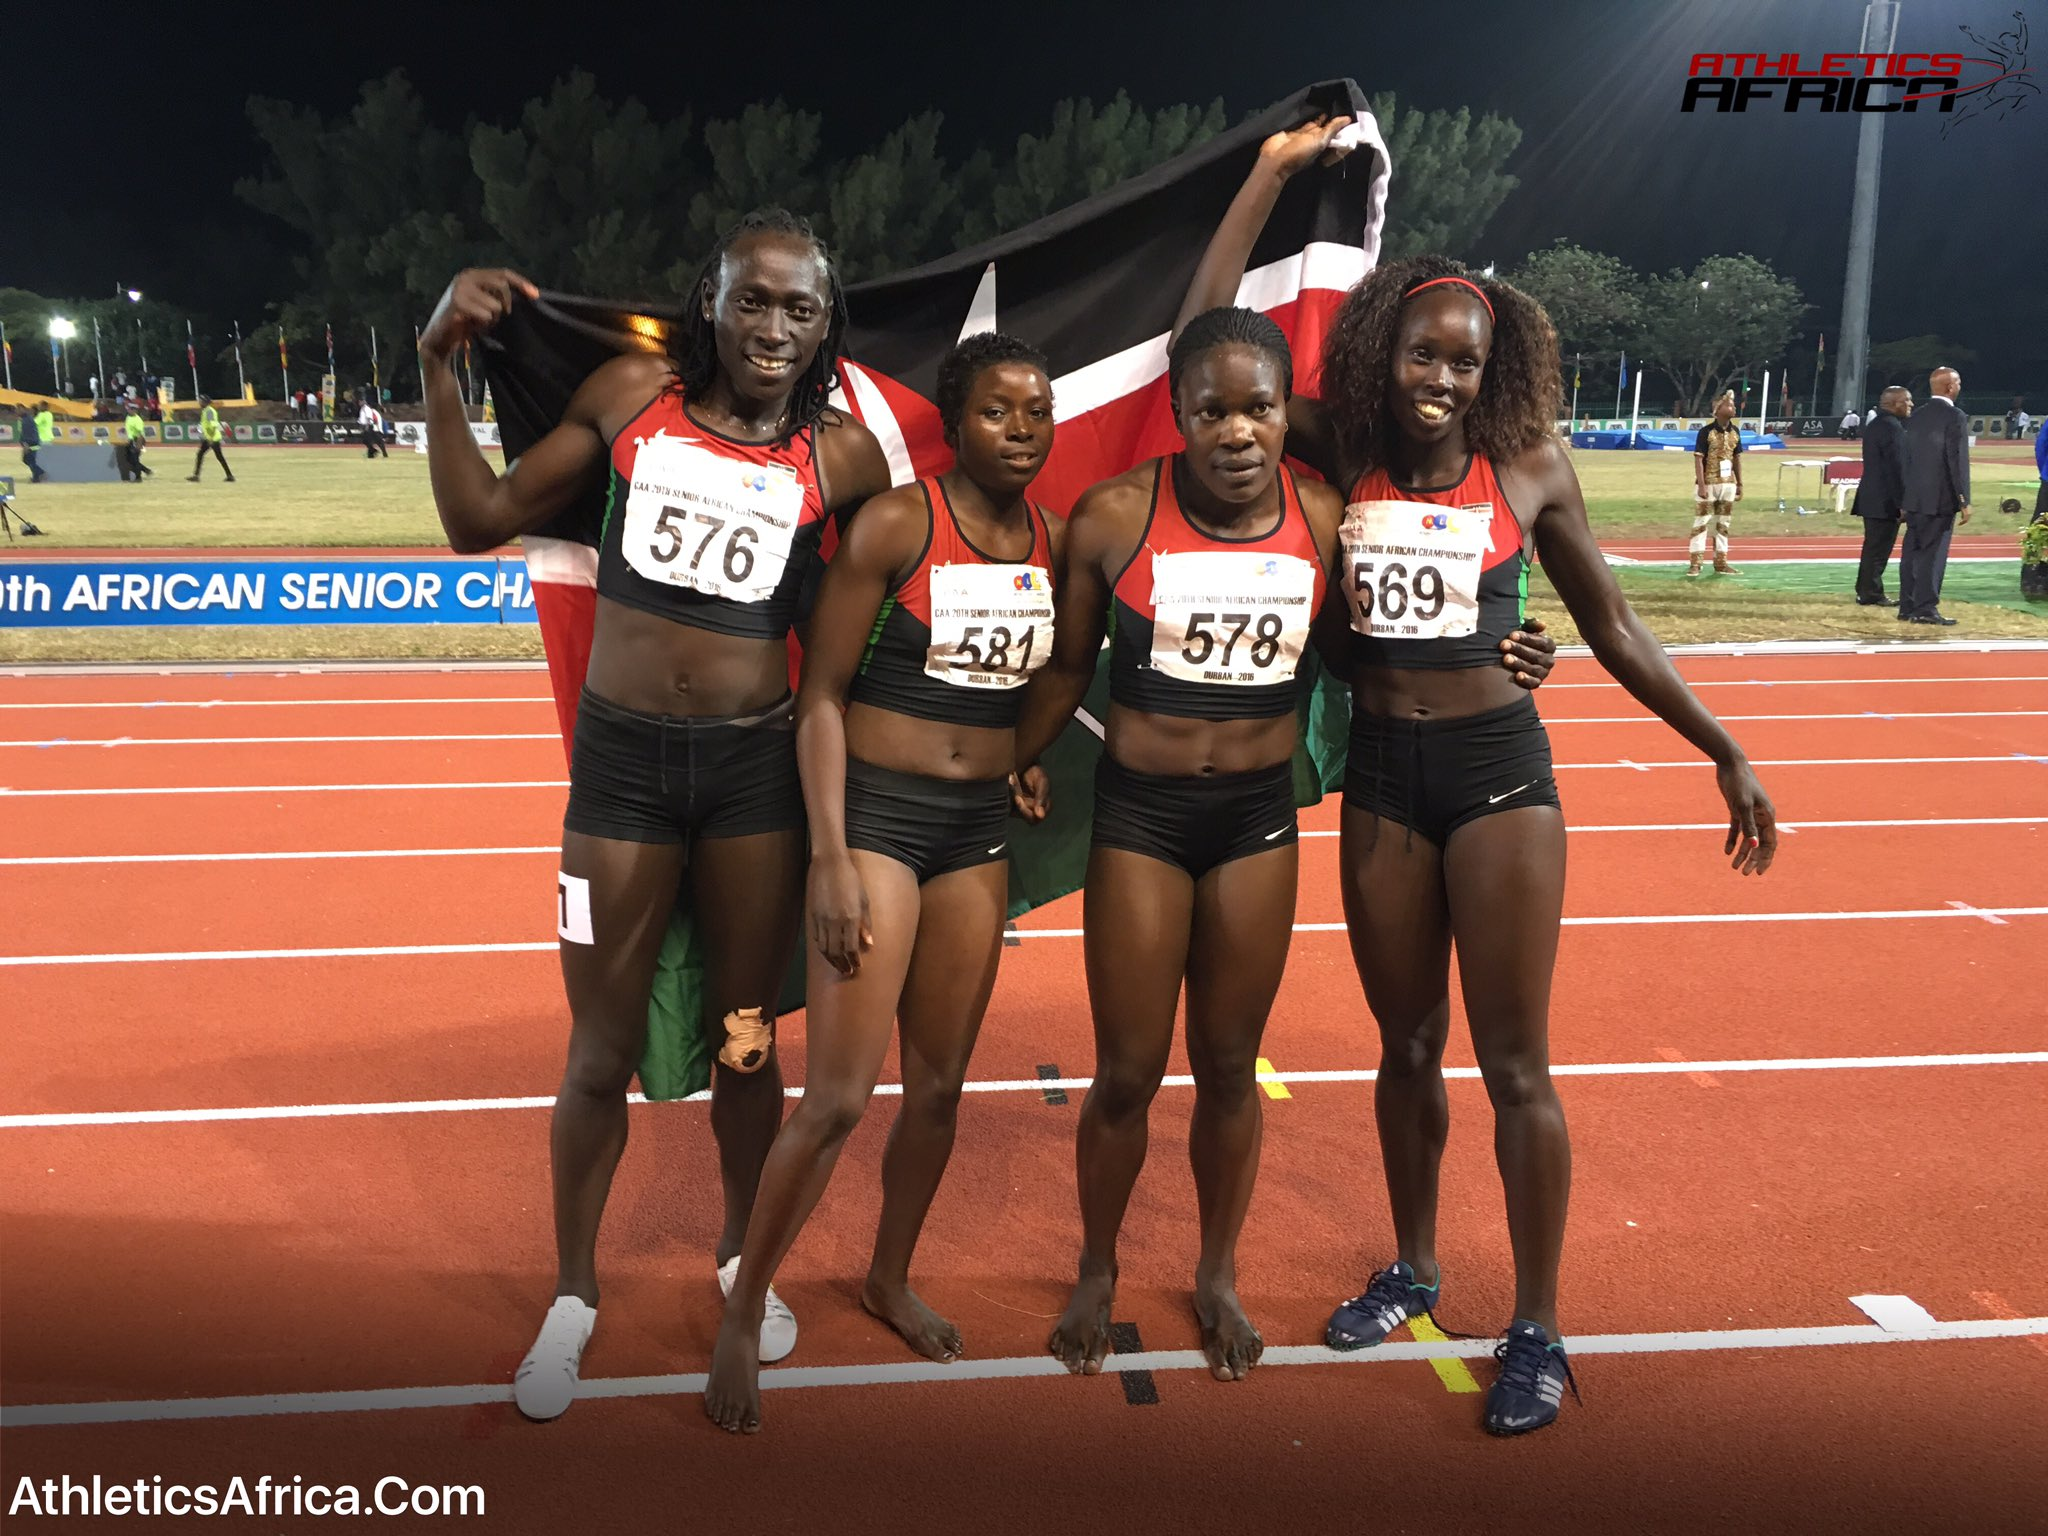 📸🇰🇪 Team #Kenya overtook #Botswana in last 80m to claim the Bronze medal in 3:30.21 at 20th African Champs in Durban https://t.co/f5I6o11agO